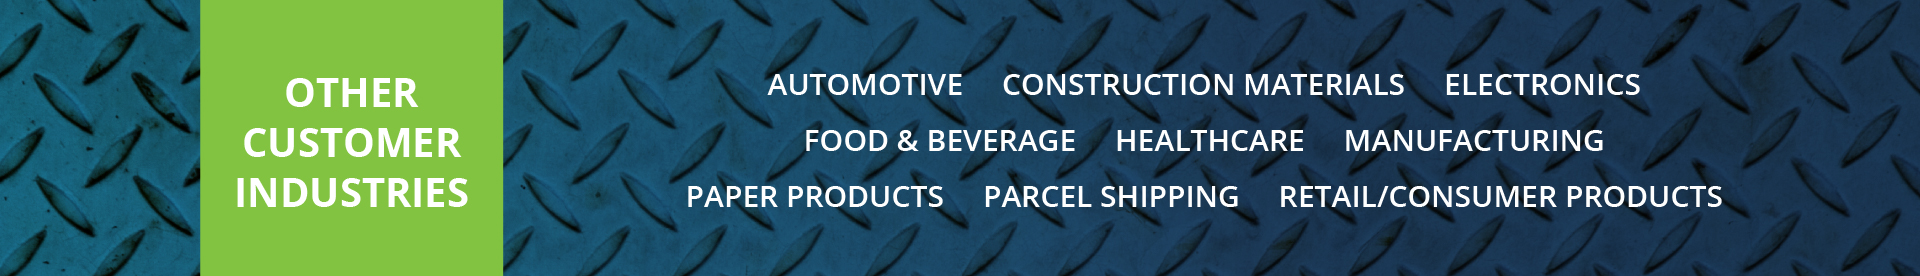 transportation and logistics companies in Gainesville Ga - Other Customers Industries IMG